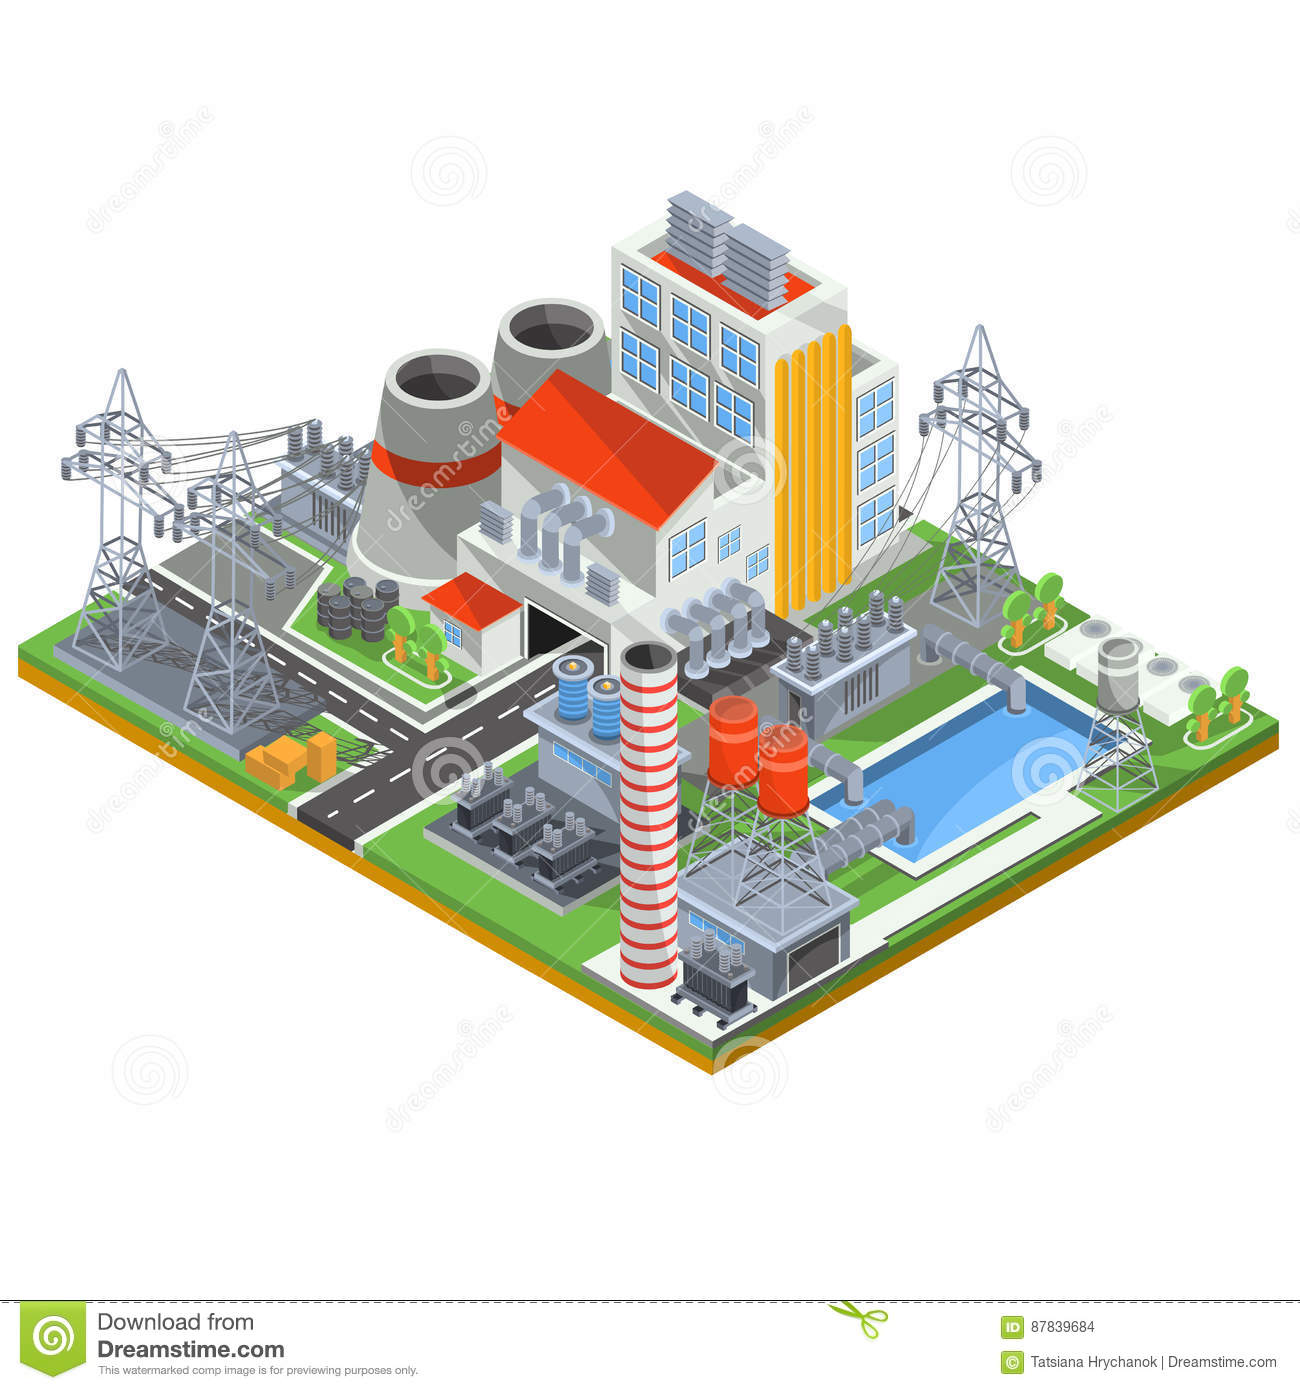 hight resolution of isometric vector illustration of a thermal power plant for the production of electrical energy with the flue pipes industrial buildings and power lines